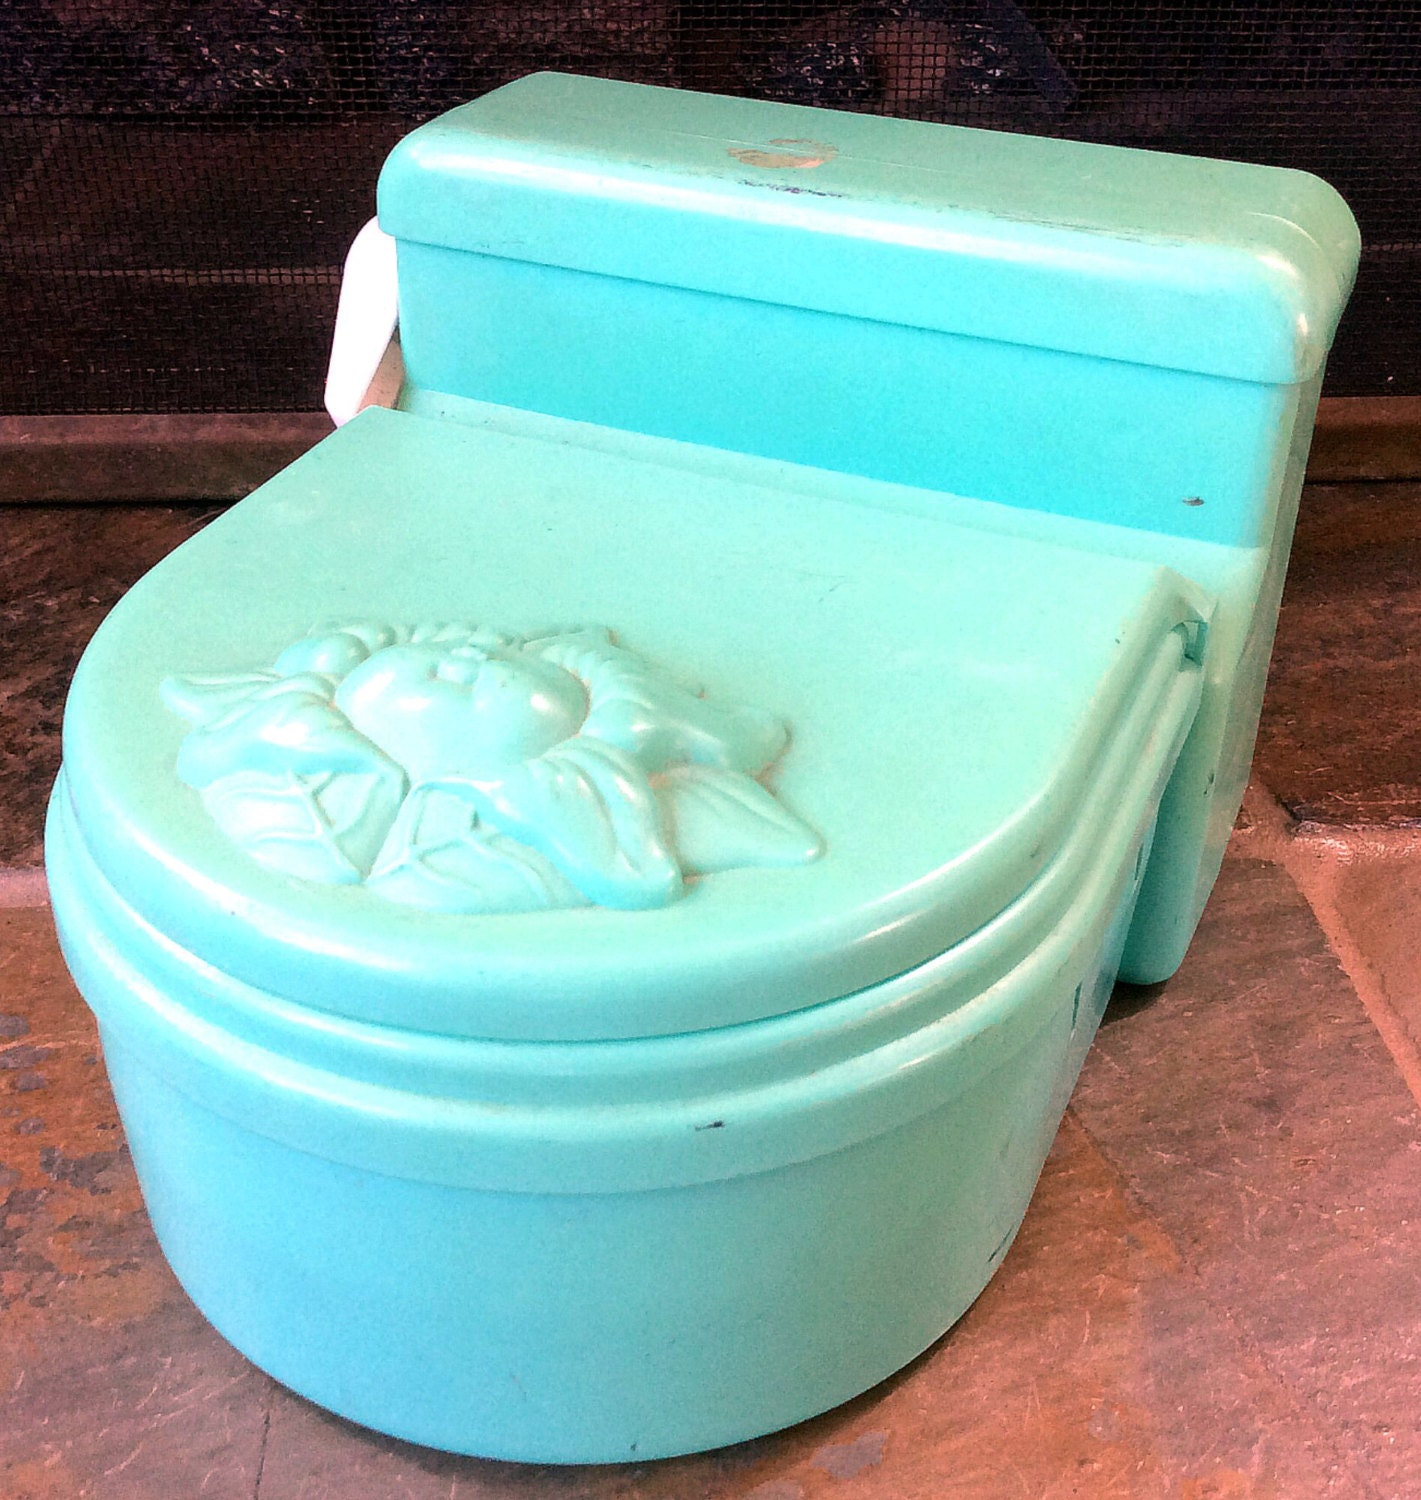 Toy Toilet Flushing Sound : Vintage antique estate hasbro cabbage patch doll toy